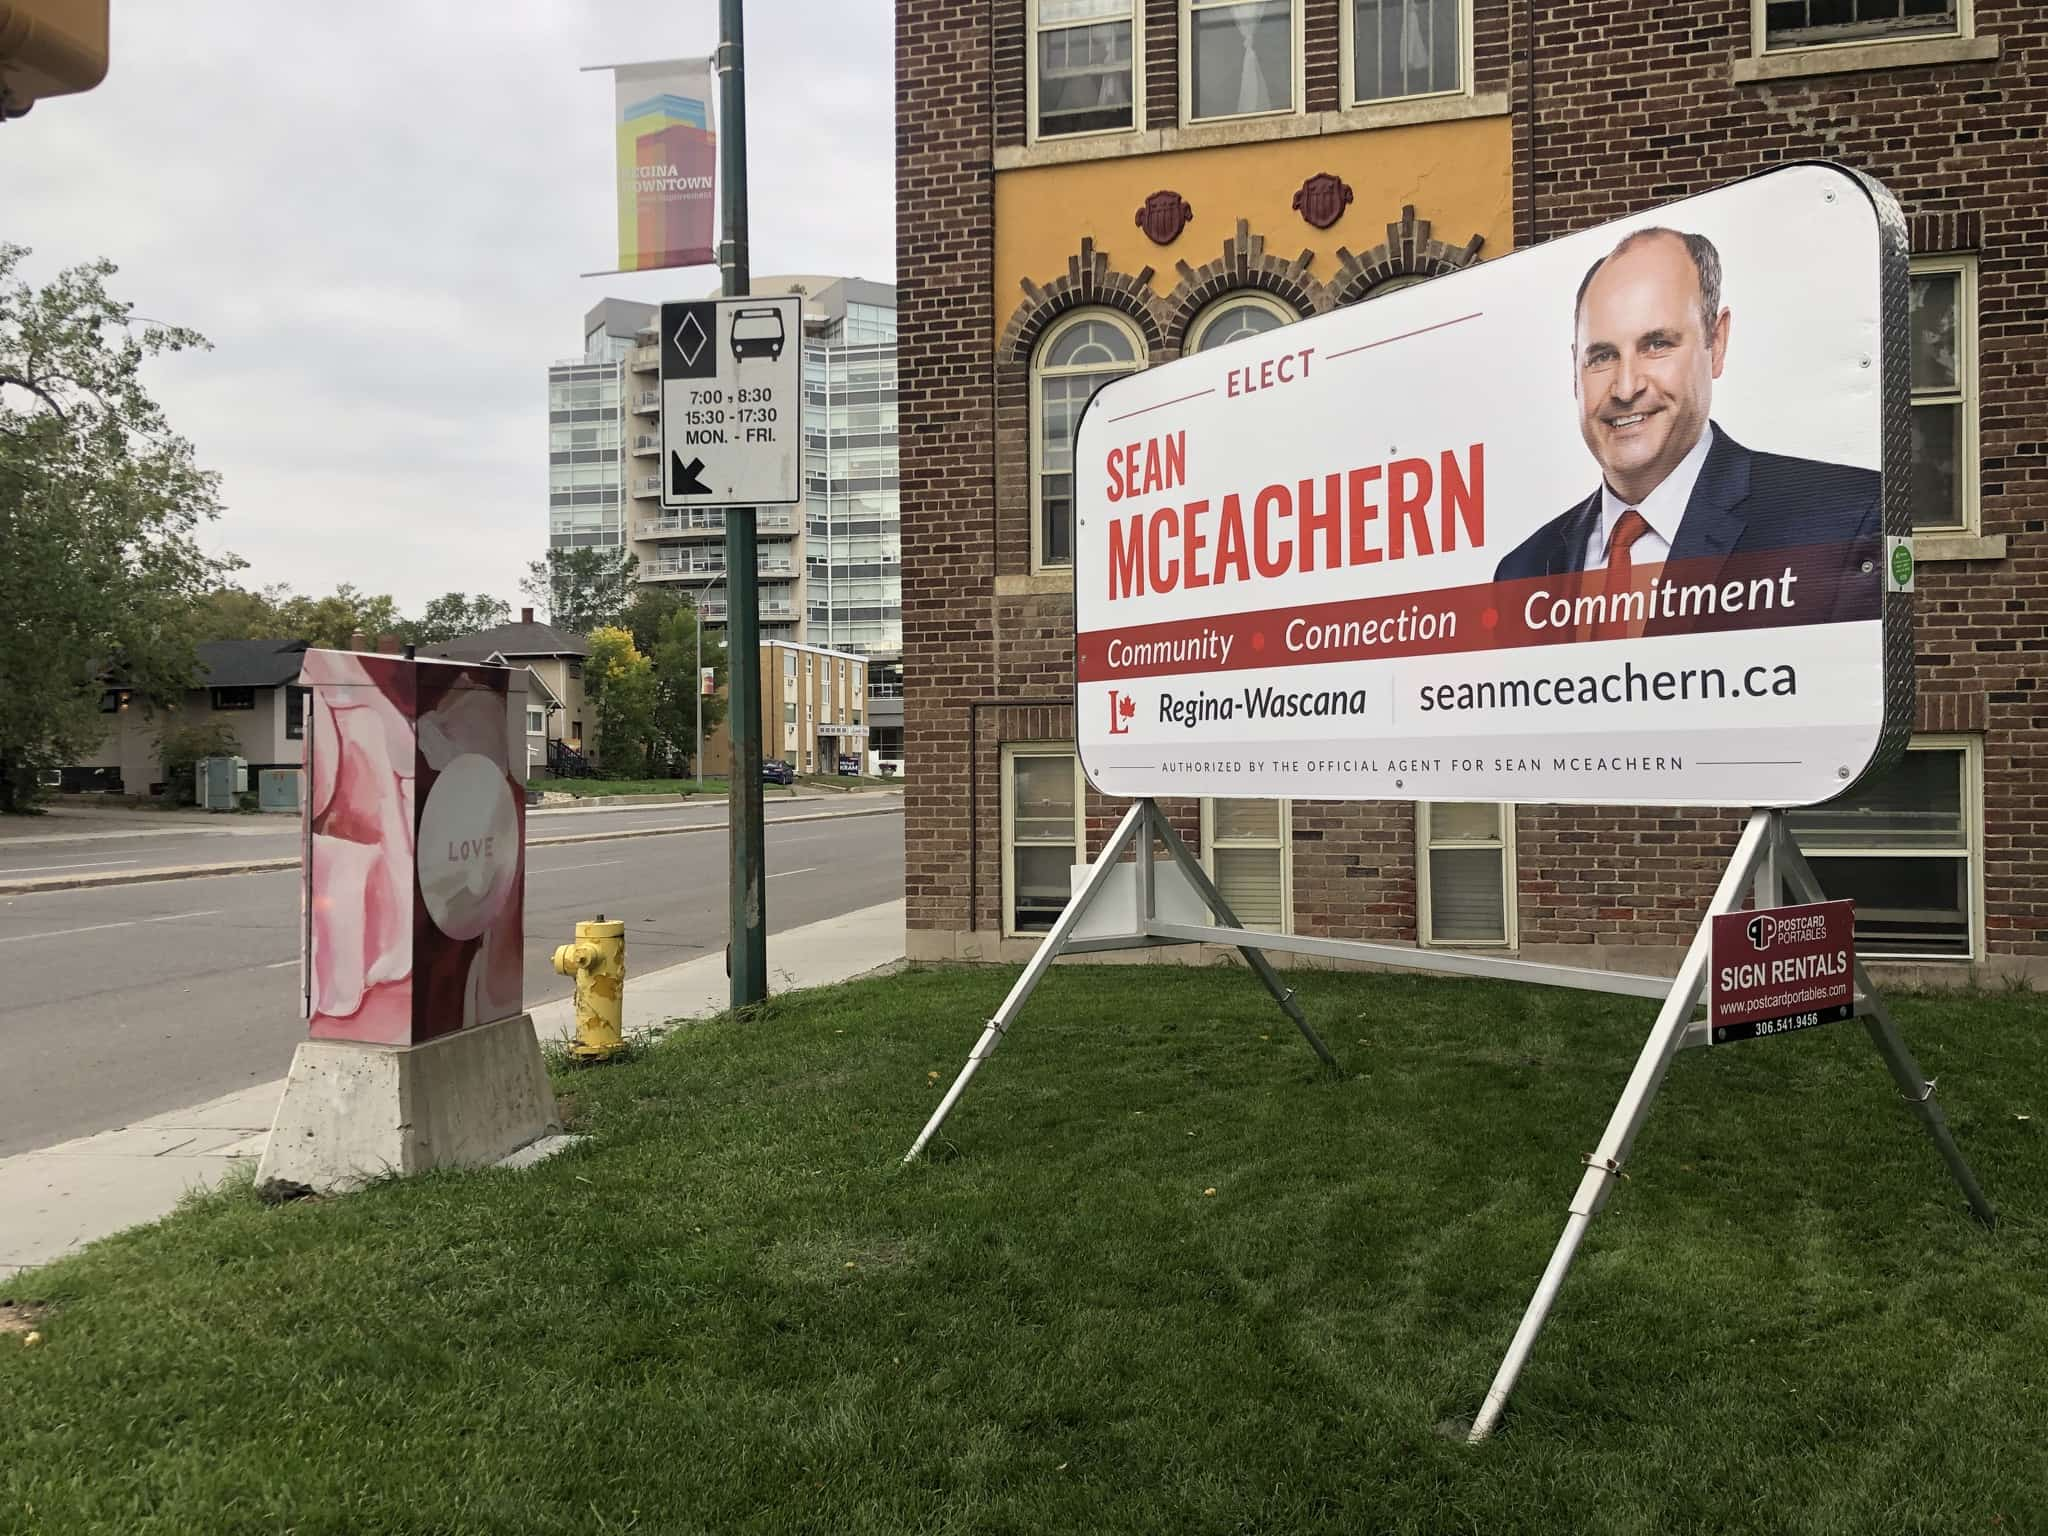 Liberal candidate Sean McEachern is hoping to win the Regina-Wascana riding against Conservative incumbent Michael Kram who unseated former Liberal MP Ralph Goodale in 2019. (Dylan Robertson / Winnipeg Free Press)